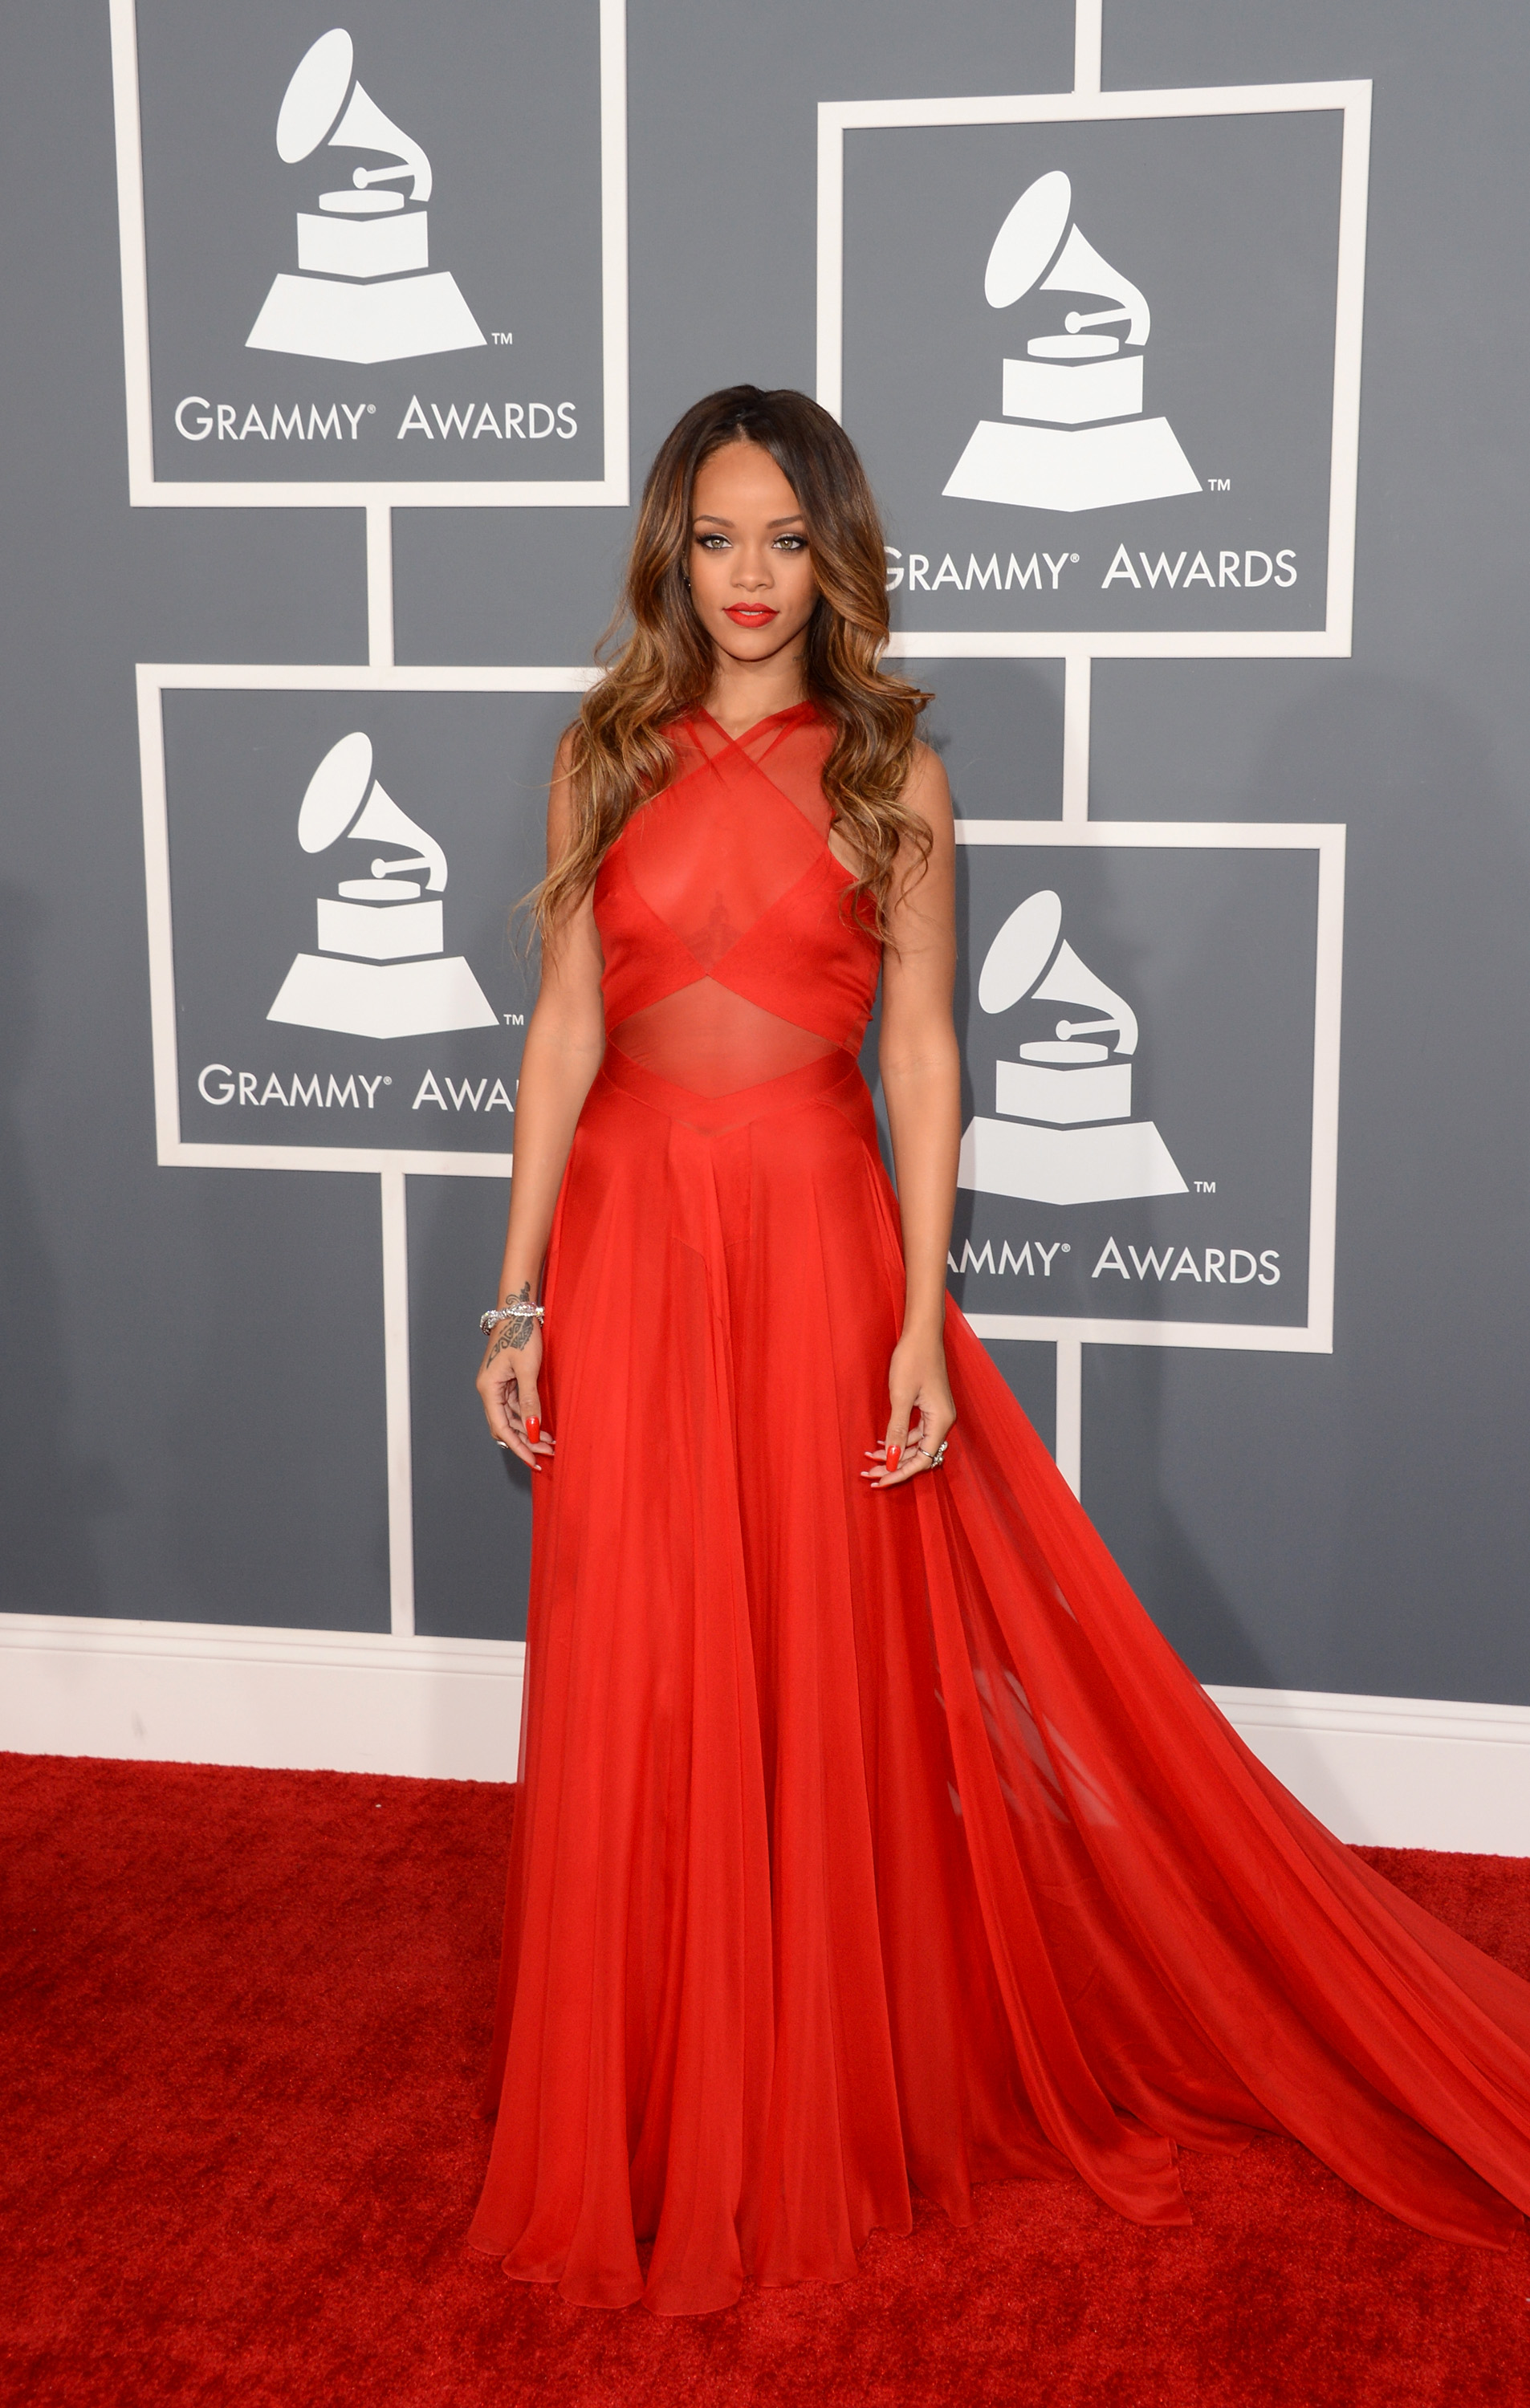 Rihanna wore a red Azzedine Alaïa gown for the Grammy Awards.